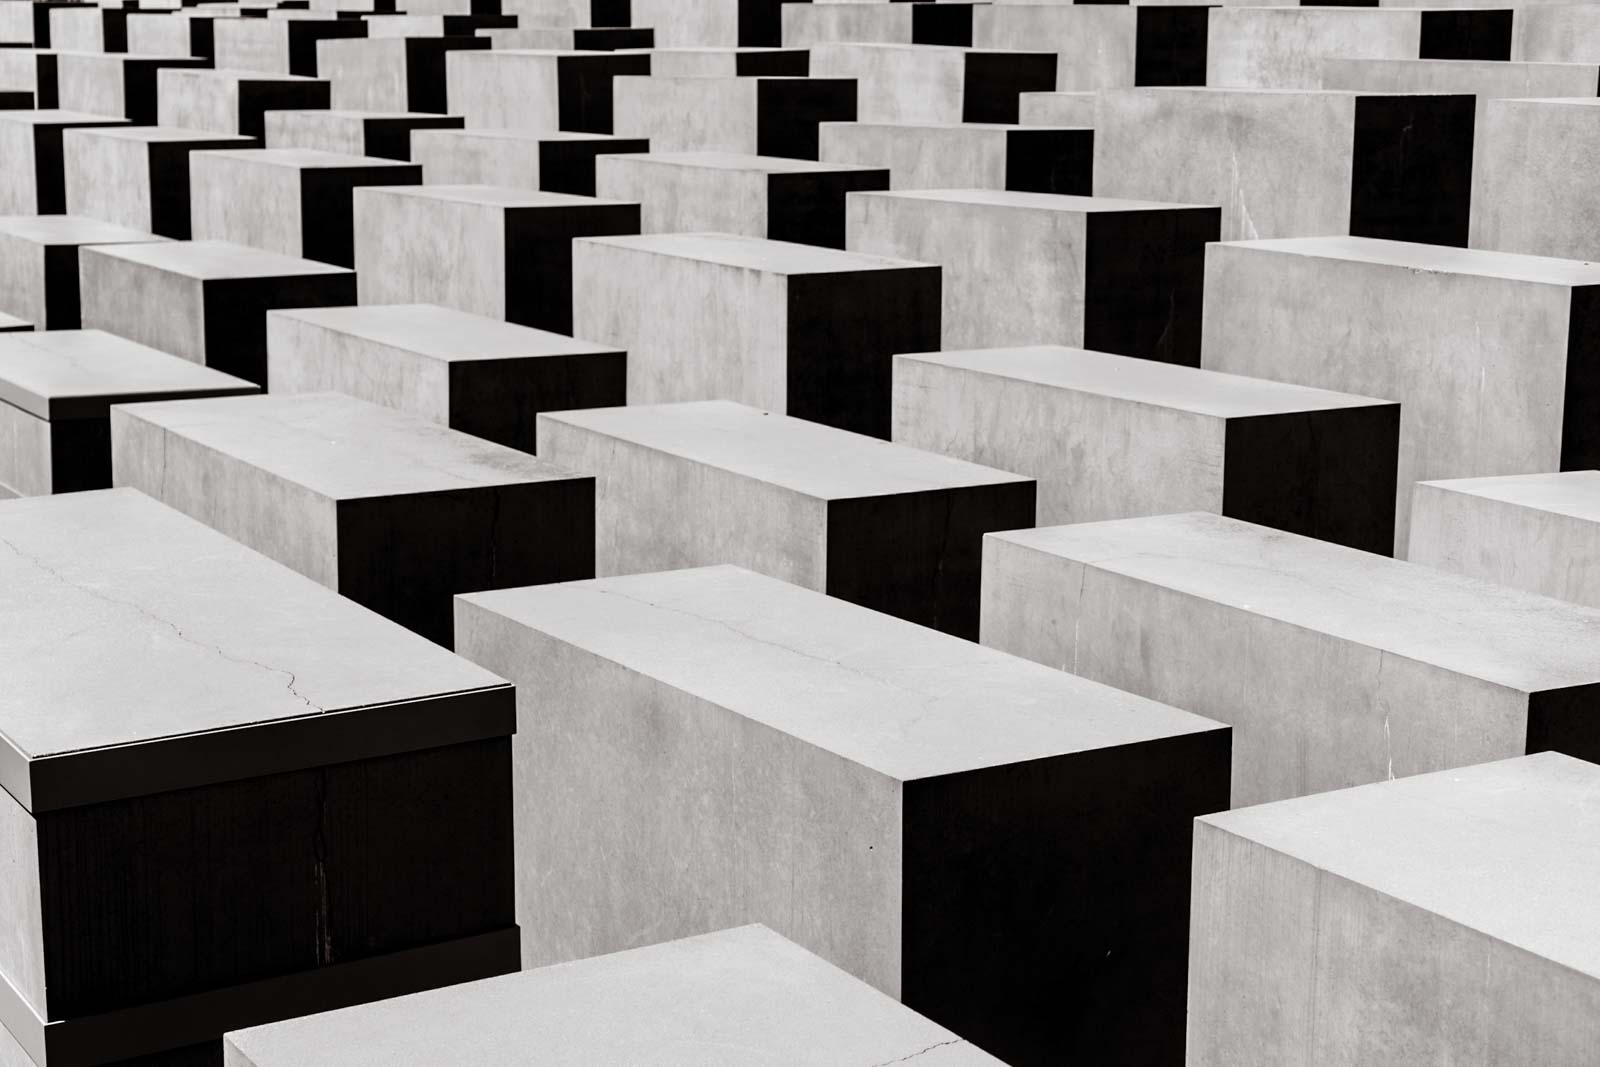 The impressive holocaust memorial in Berlin.